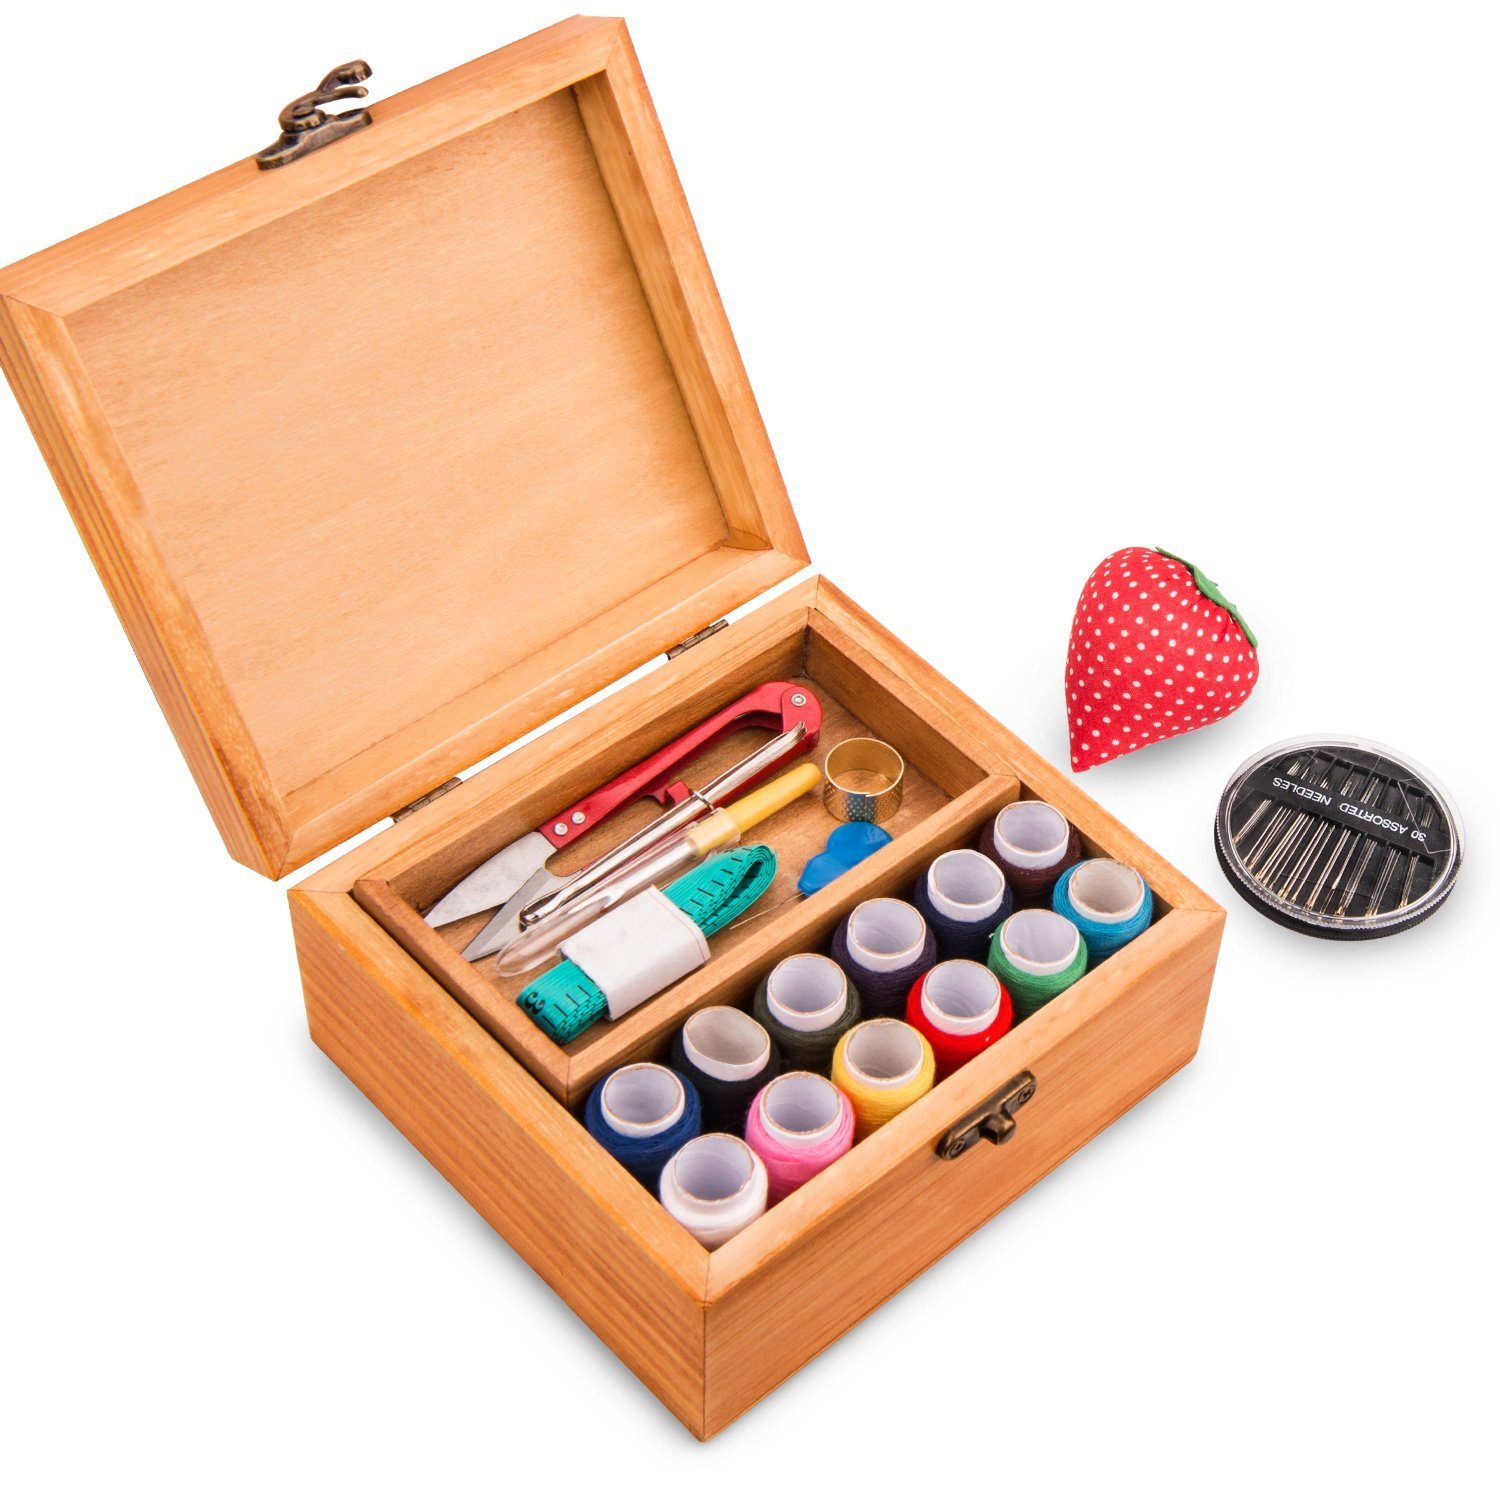 Sewing Kit BATTOP Wooden Sewing Box with 49PCS Premium Sewing Accessories for DIY Beginners Emergency Home Travel 4337015556